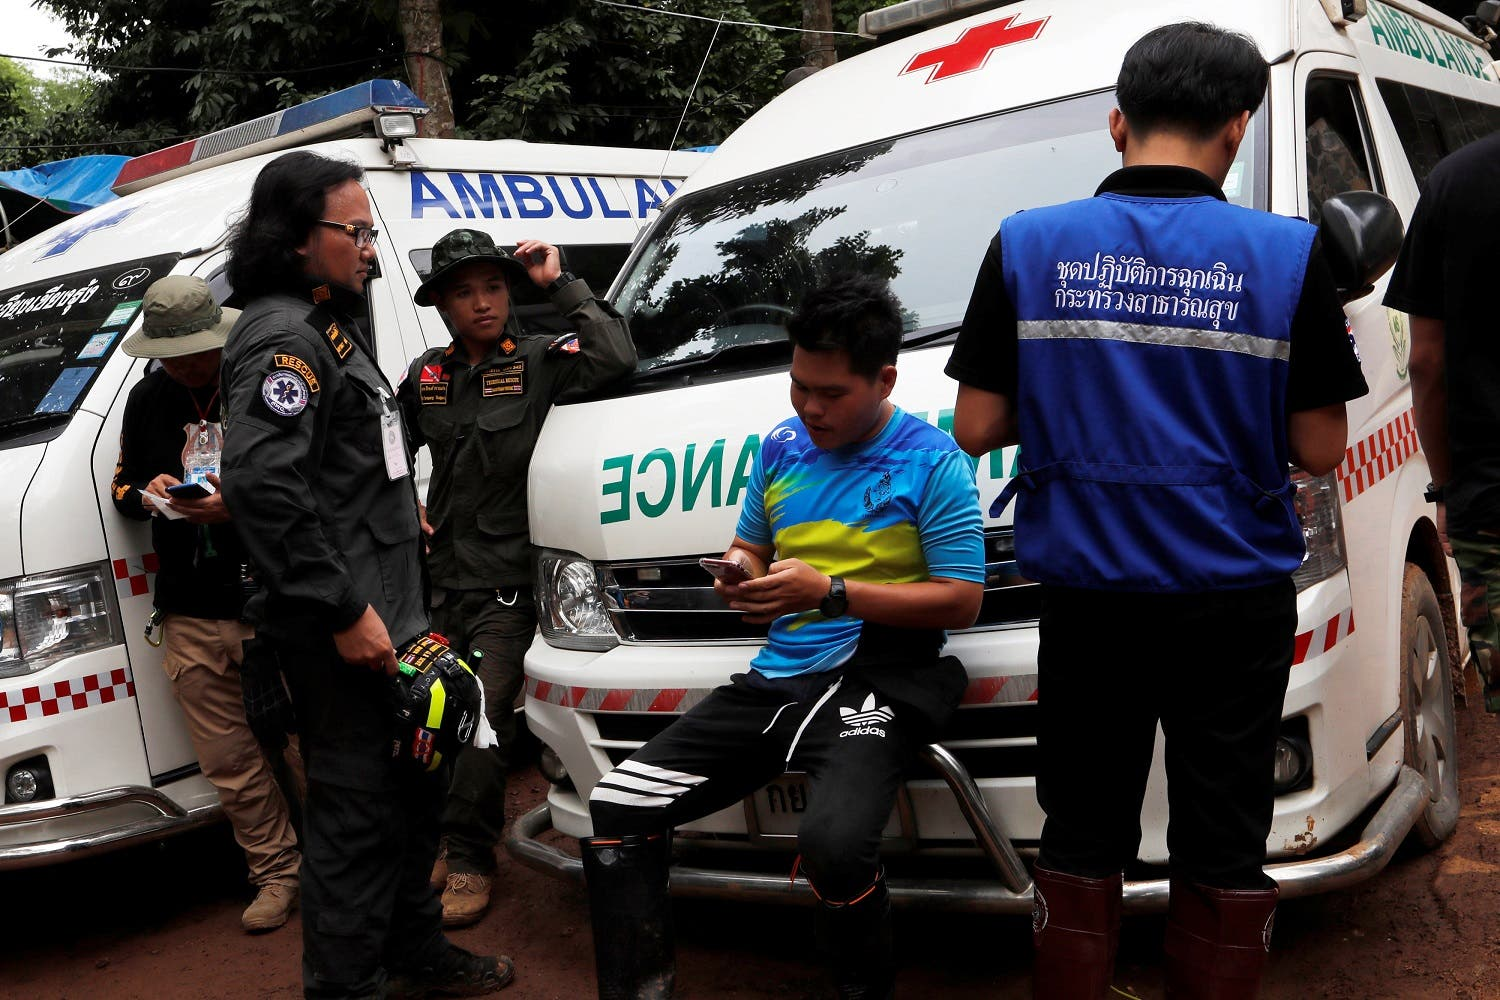 Men standby near ambulances outside Tham Luang cave complex, where 12 schoolboys and their soccer coach are trapped inside a flooded cave, in the northern province of Chiang Rai, Thailand, July 7, 2018. (Reuters)